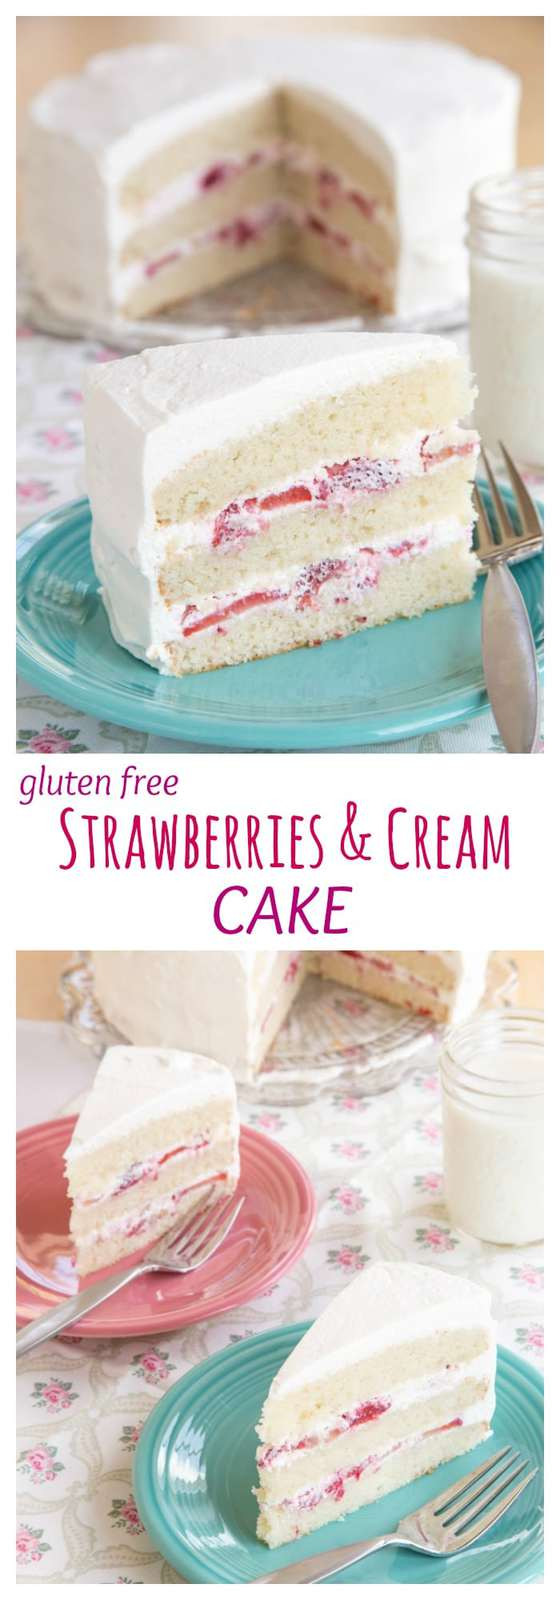 Dairy Free White Cake Recipe  Gluten Free Strawberries and Cream Cake for SundaySupper